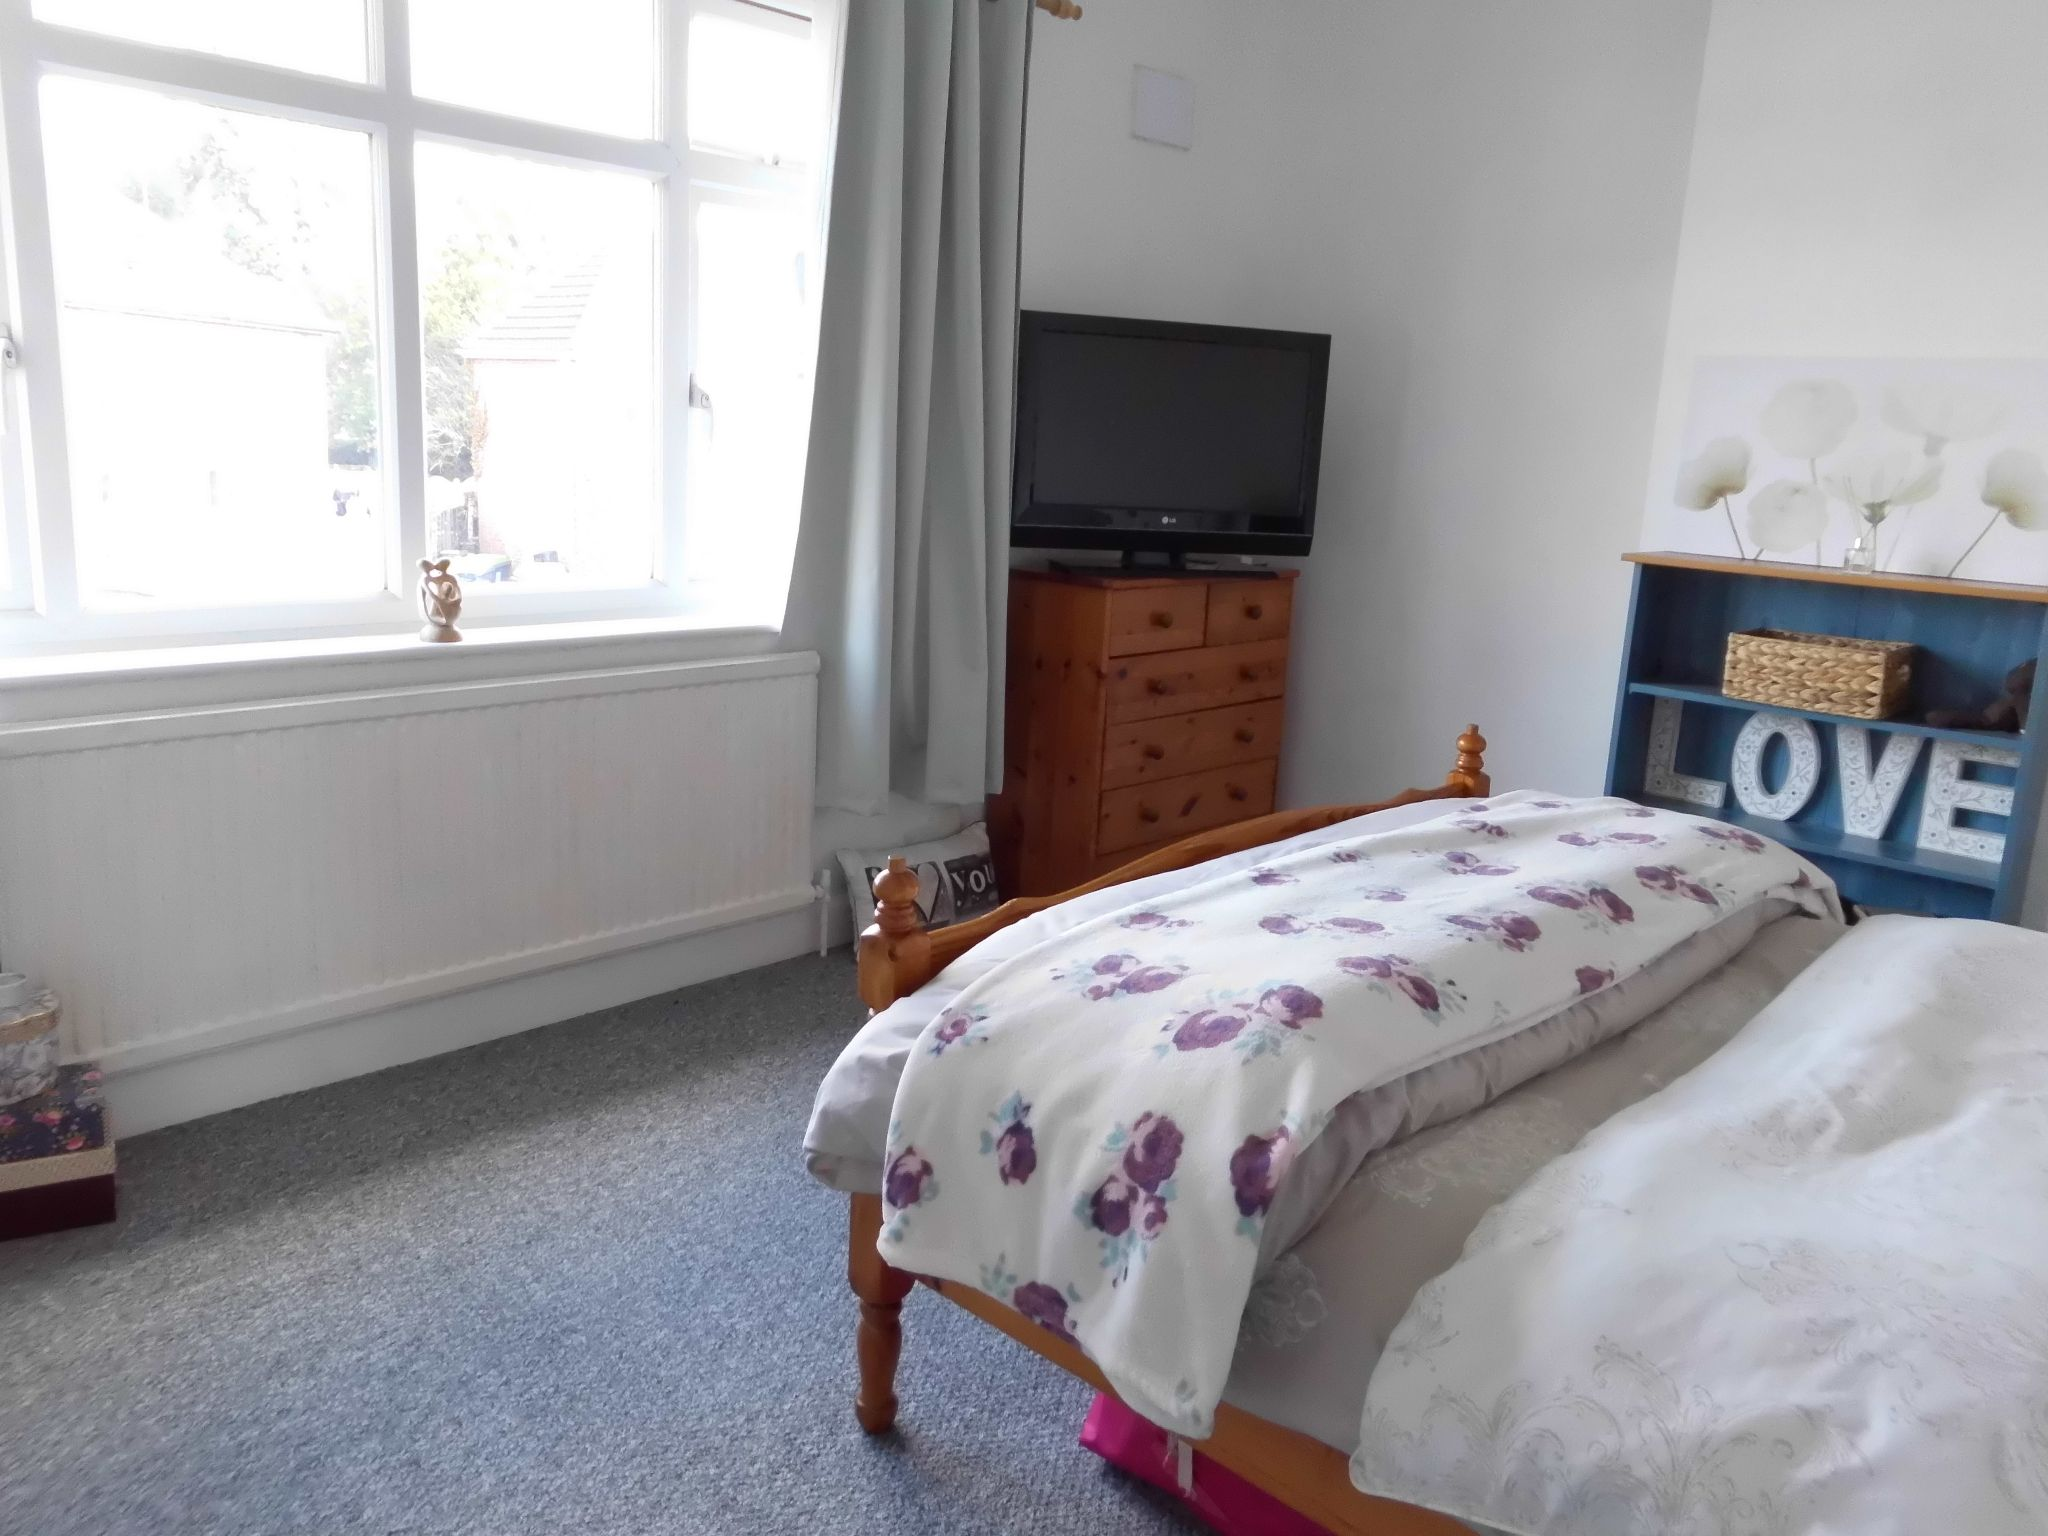 3 bedroom town house SSTC in Leicester - Photograph 7.